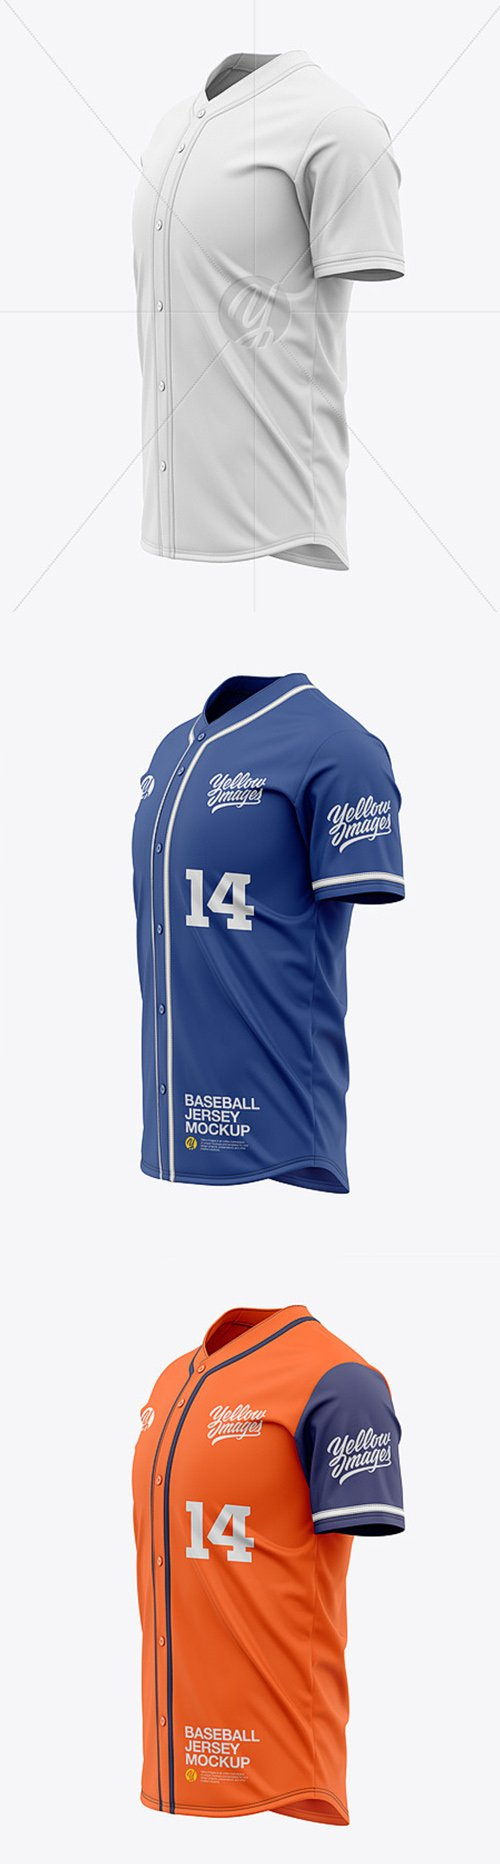 Mens Baseball Jersey Mockup - Side View 46238